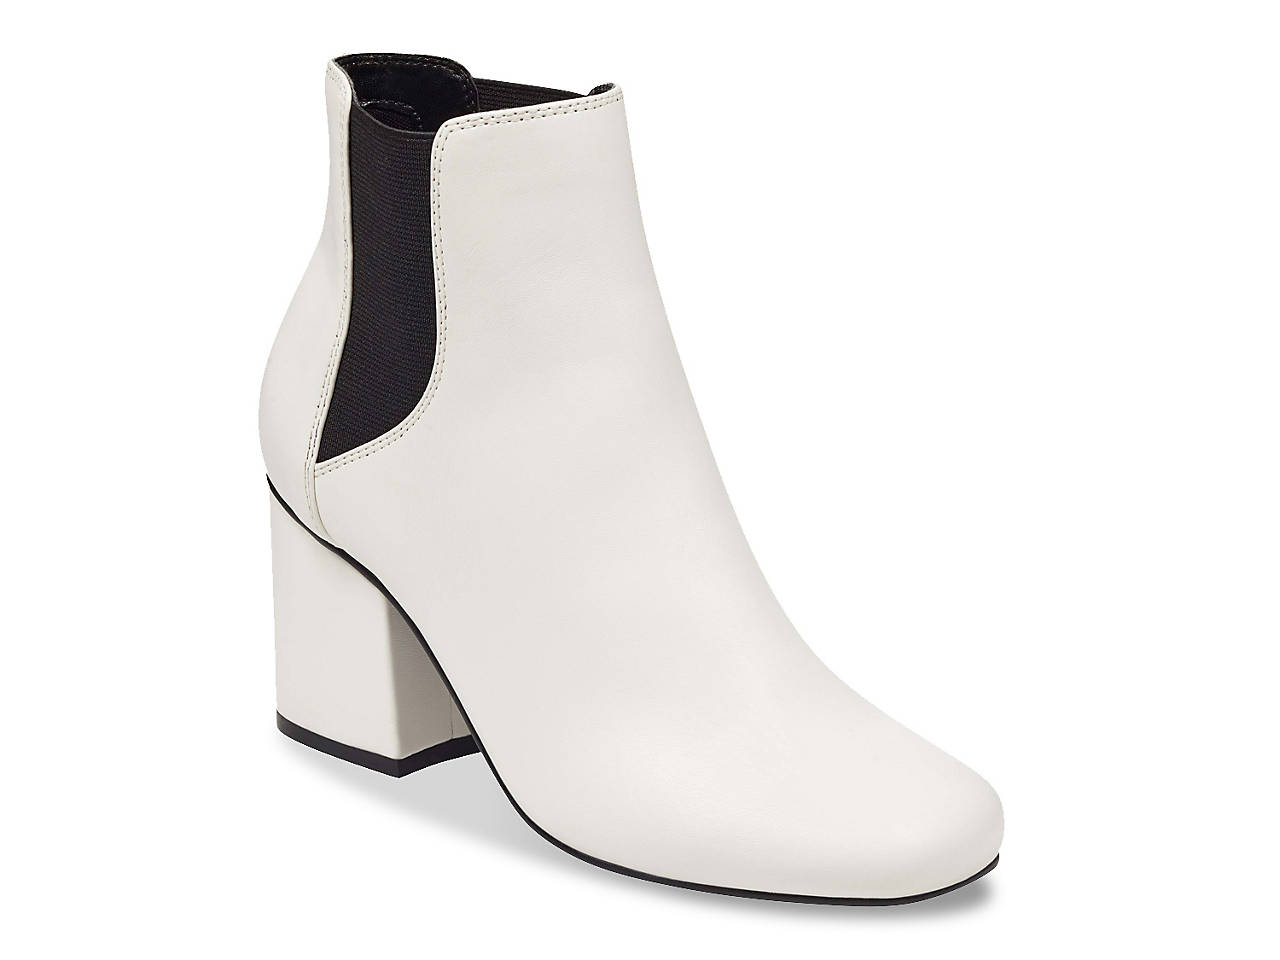 Veraly Chelsea Boot